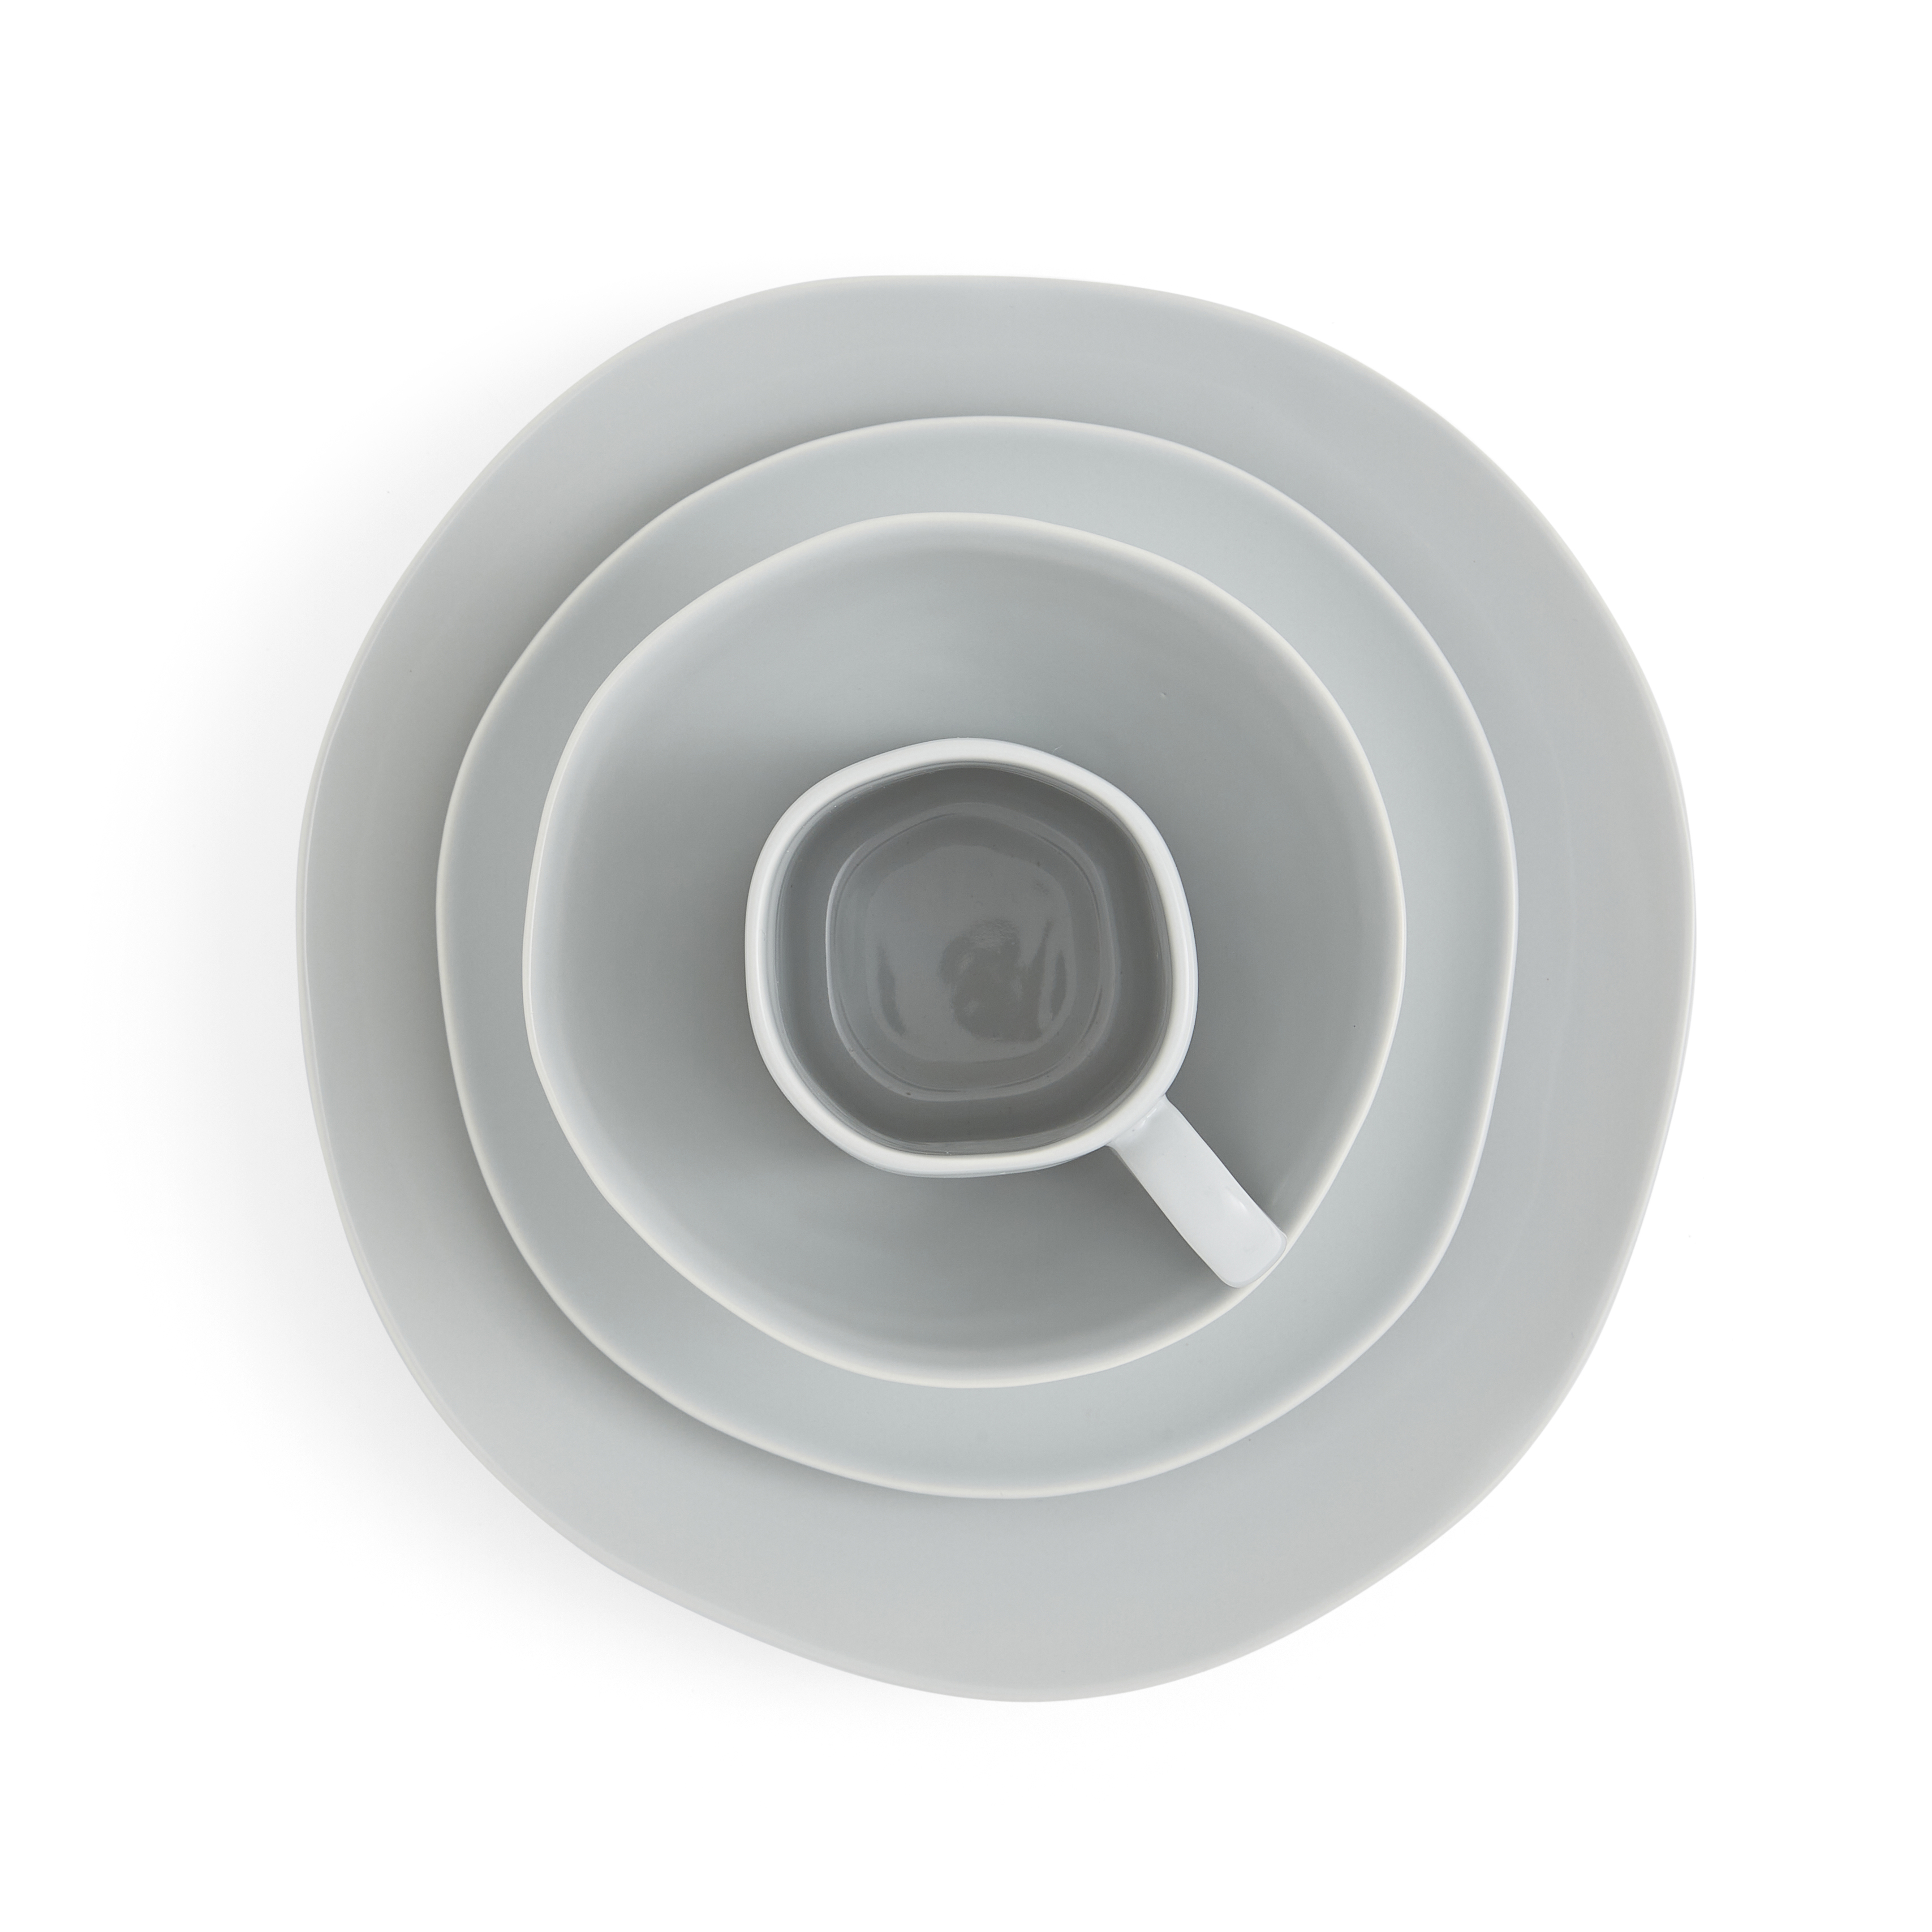 Sophie Conran Arbor 4 Piece Place Setting- Dove Grey image number 1